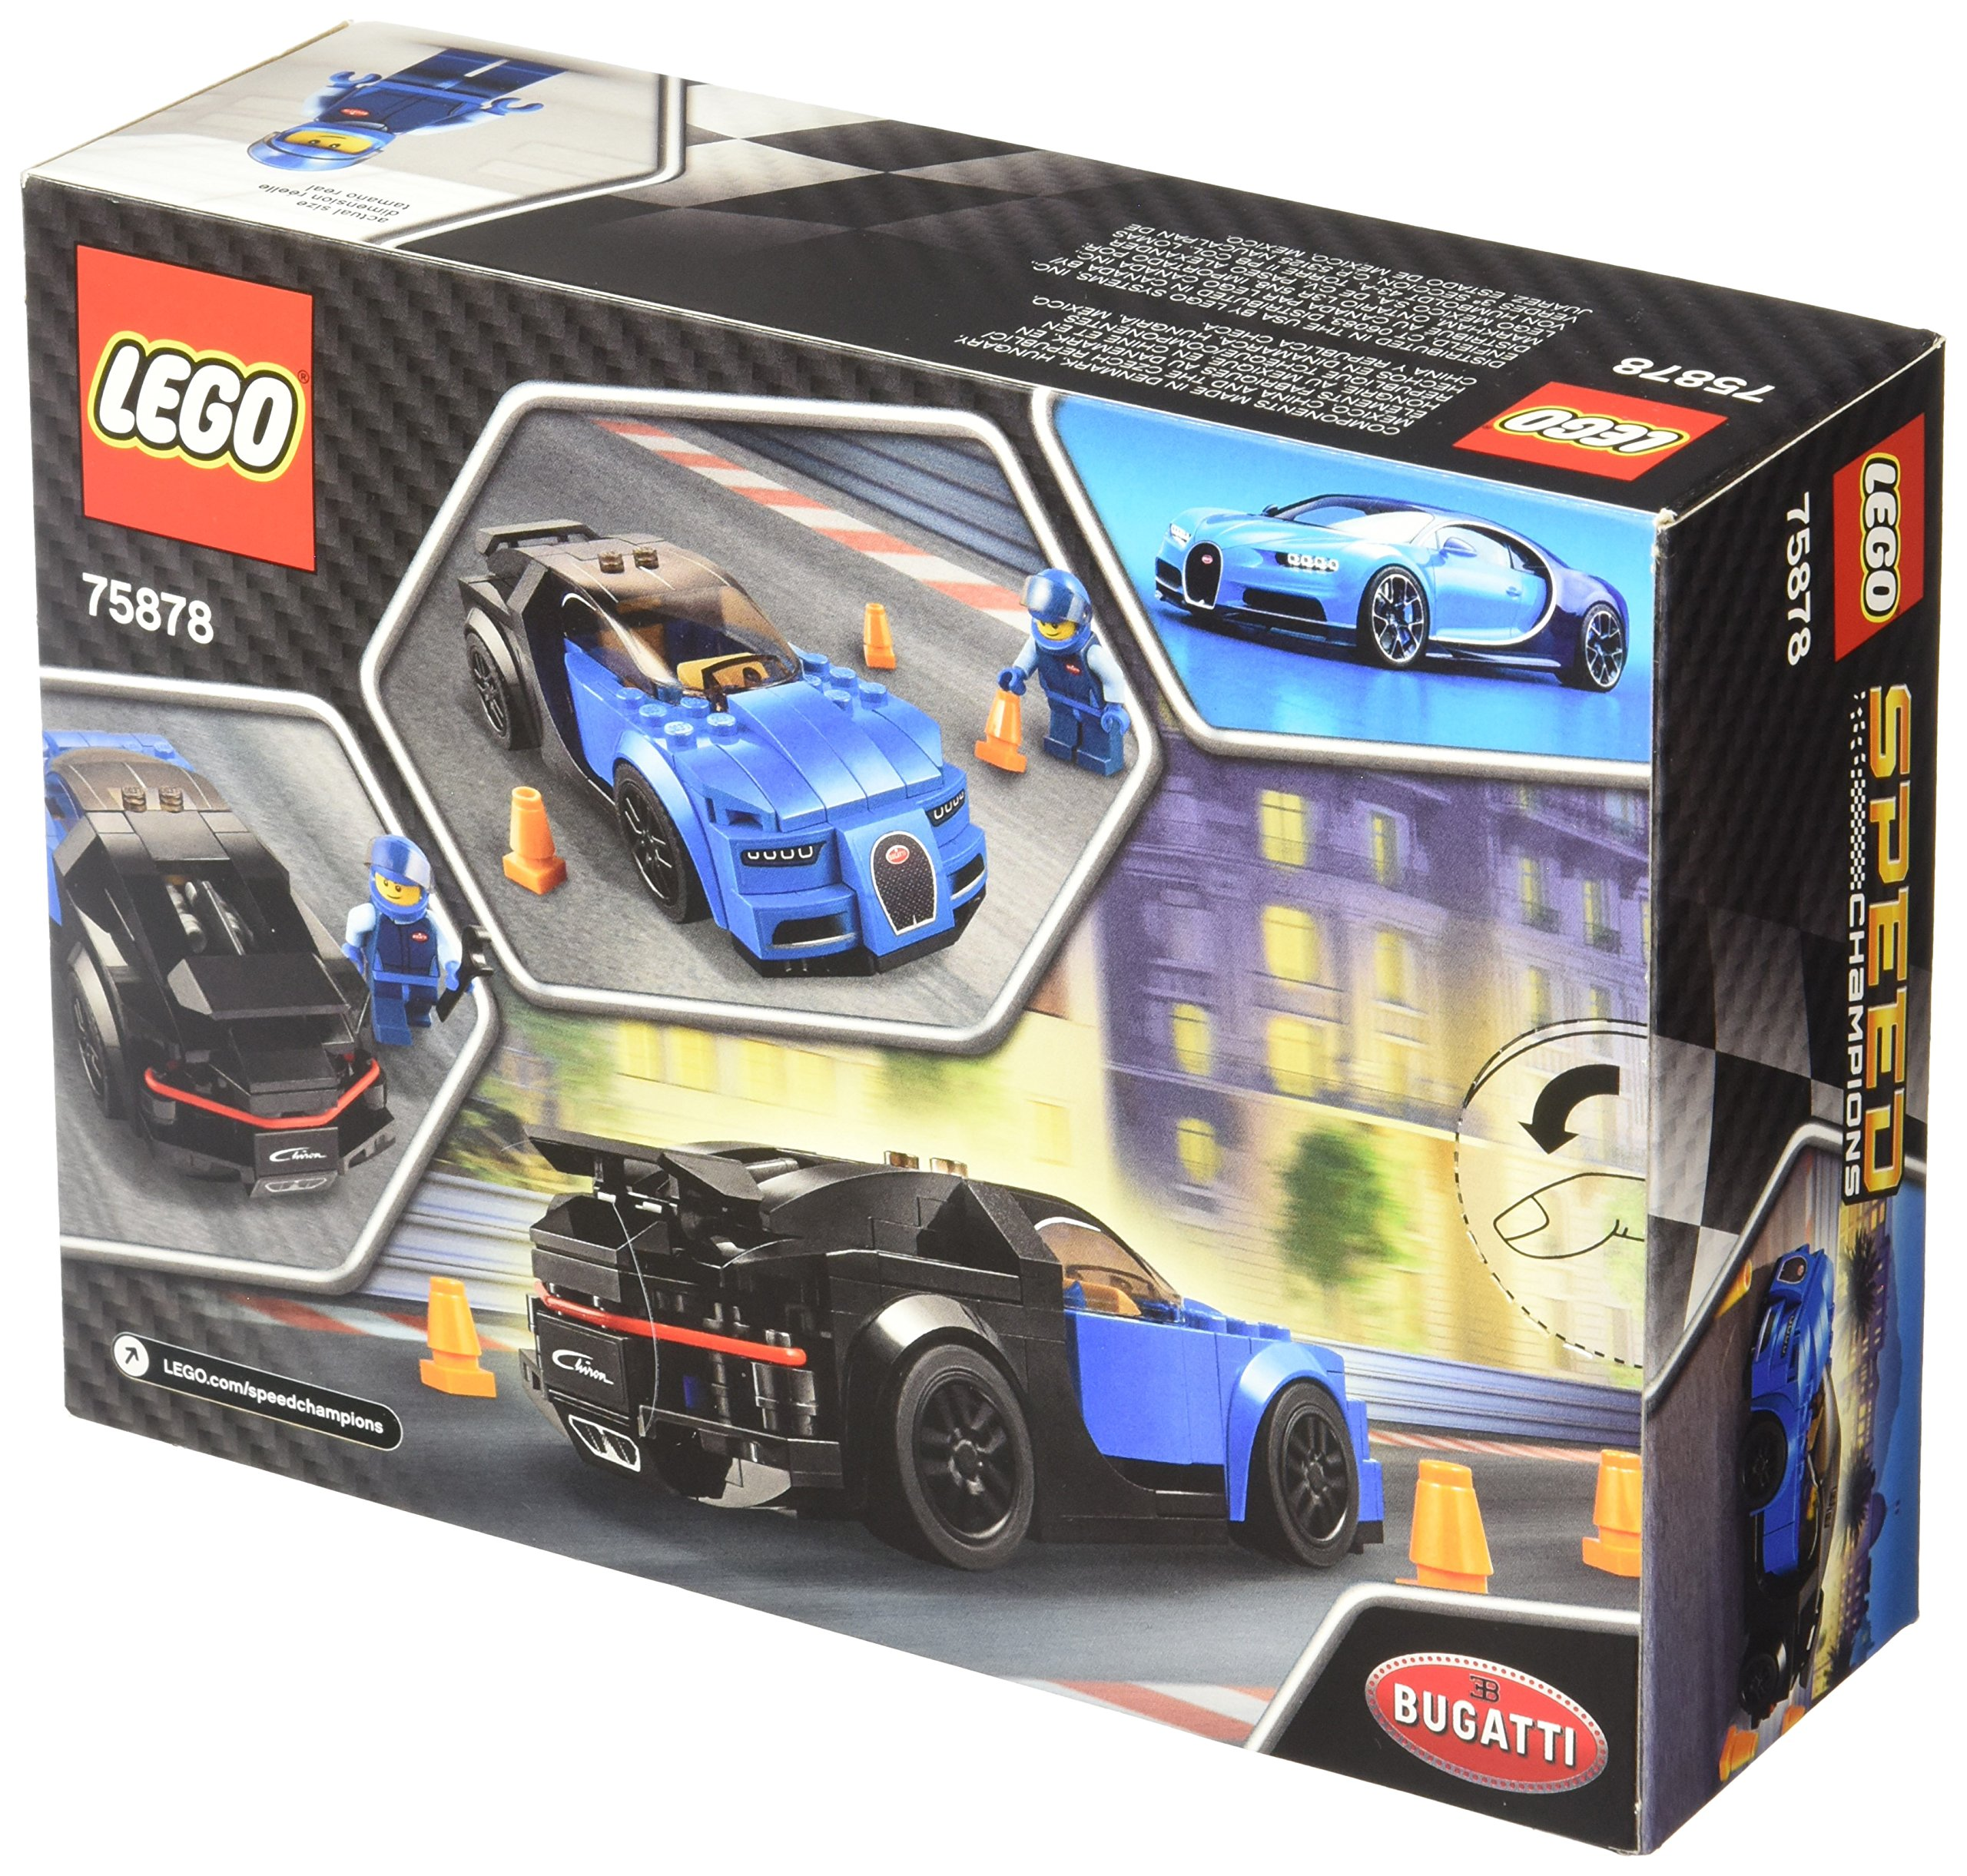 lego bugatti chiron 75878 ebay. Black Bedroom Furniture Sets. Home Design Ideas